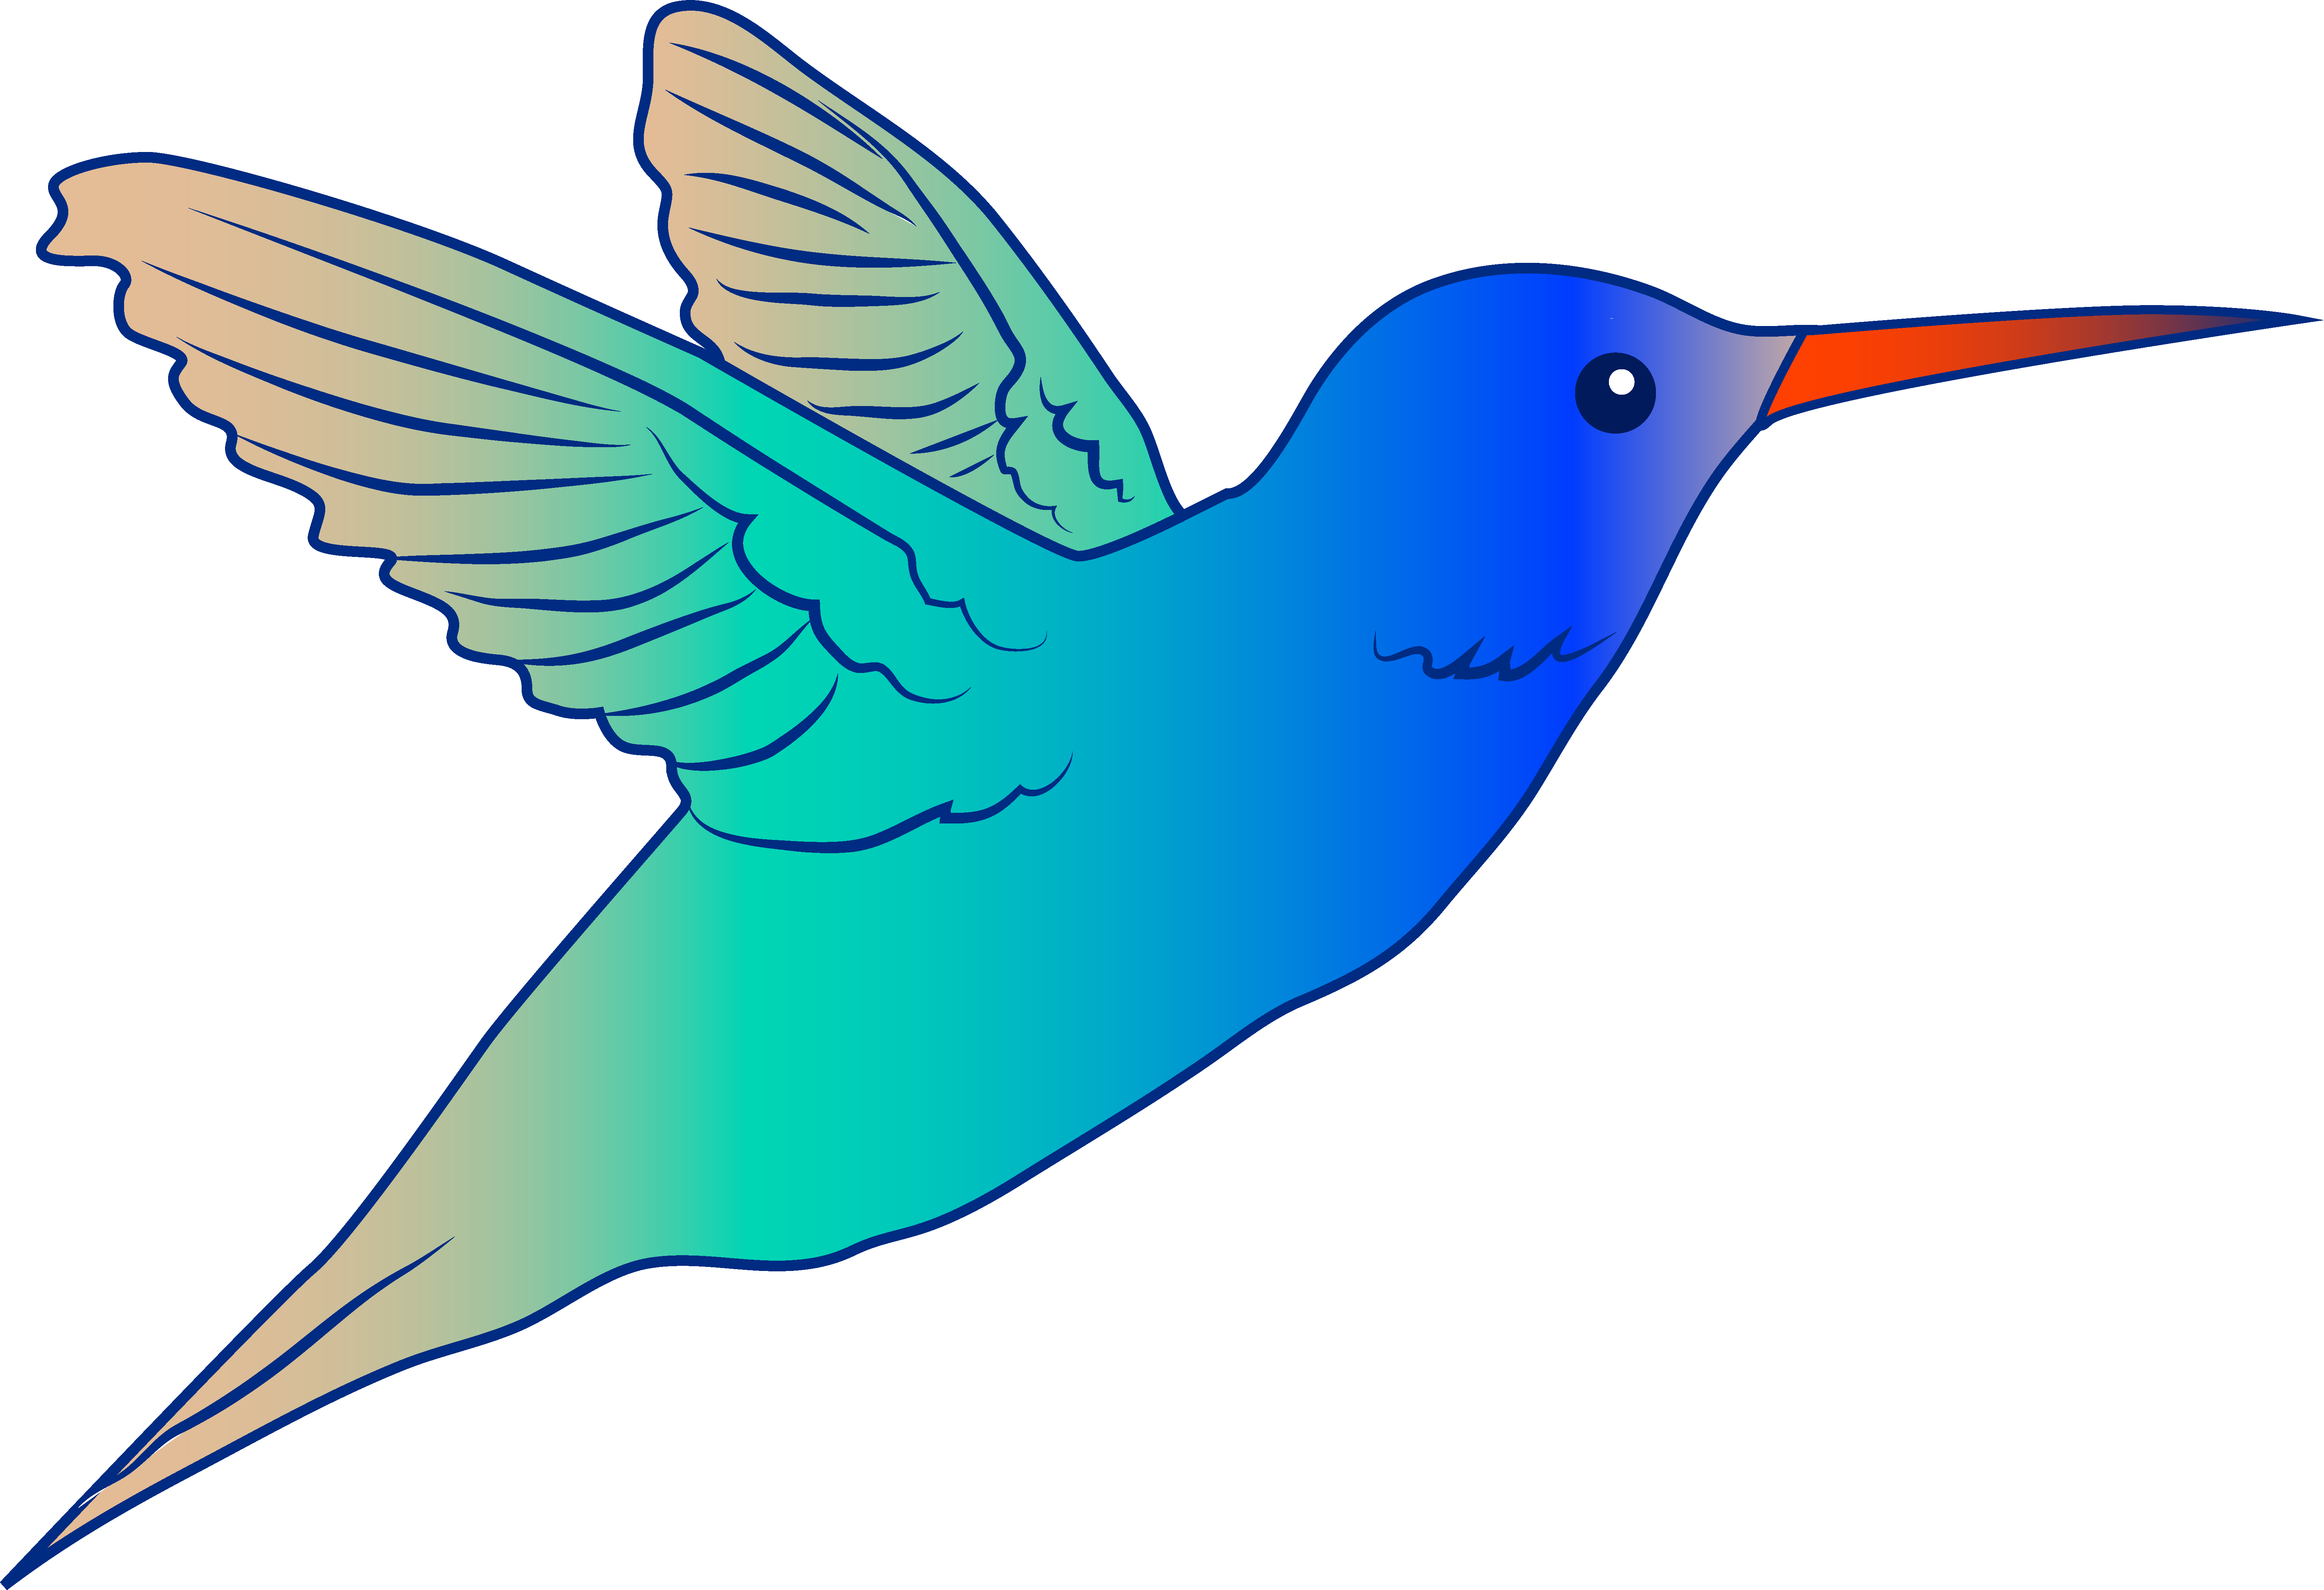 Drawn hummingbird rufous hummingbird Clipart clipart Clipartix image Bird